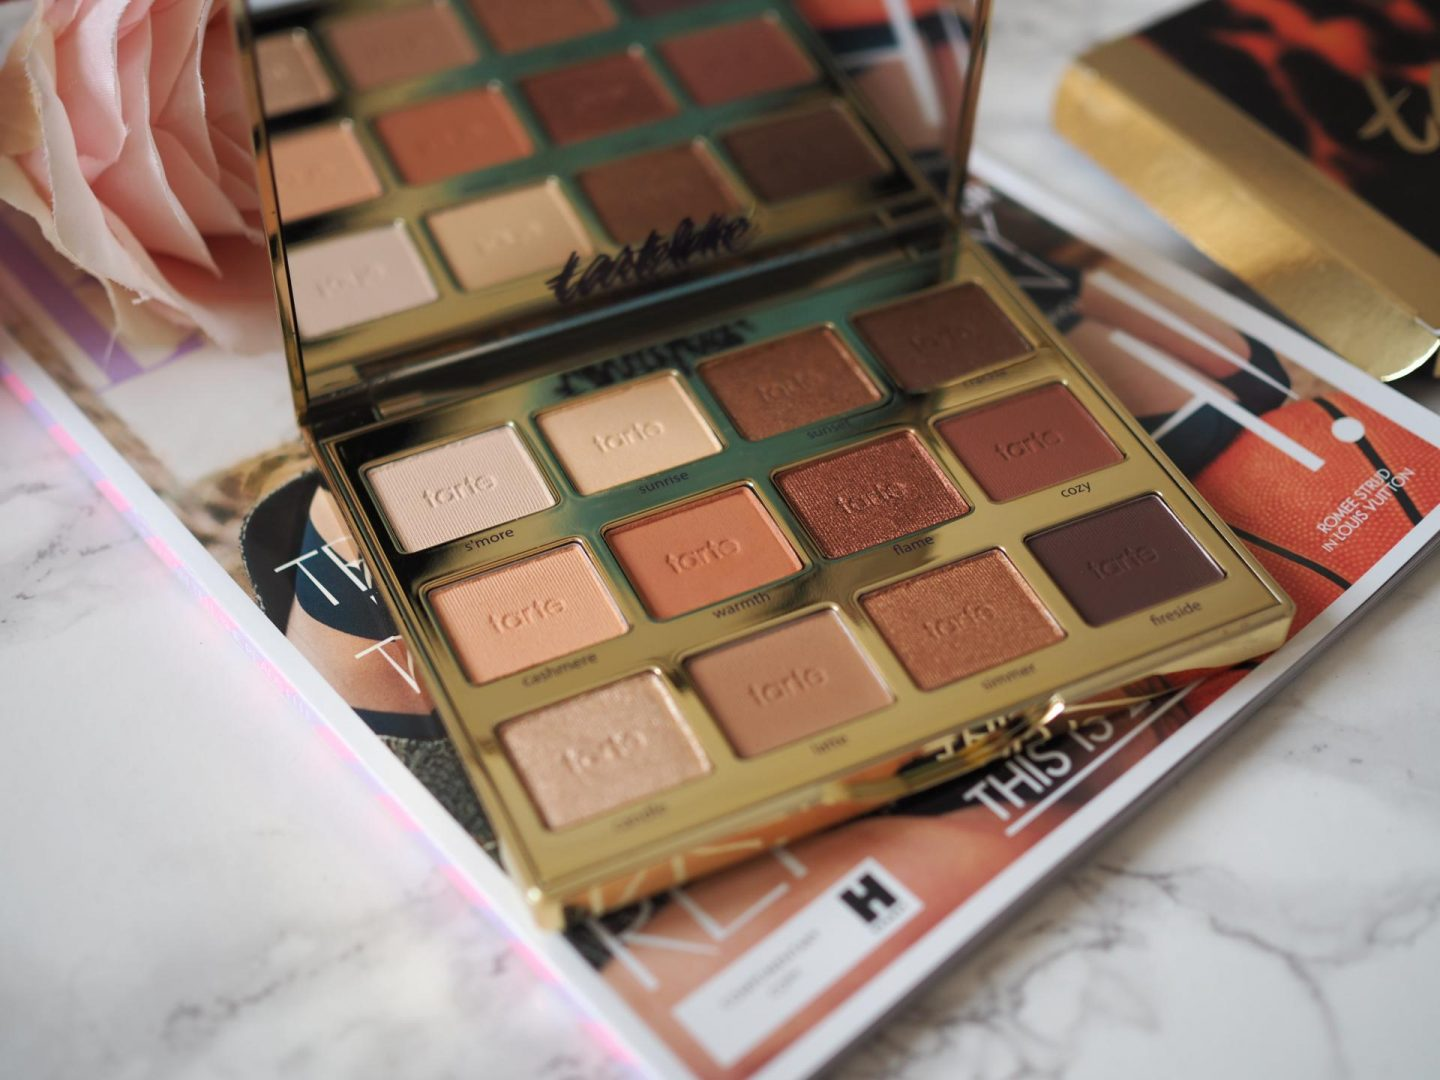 Valentine's Day Gift Guide - Tartlette Toasted Palette from Tarte